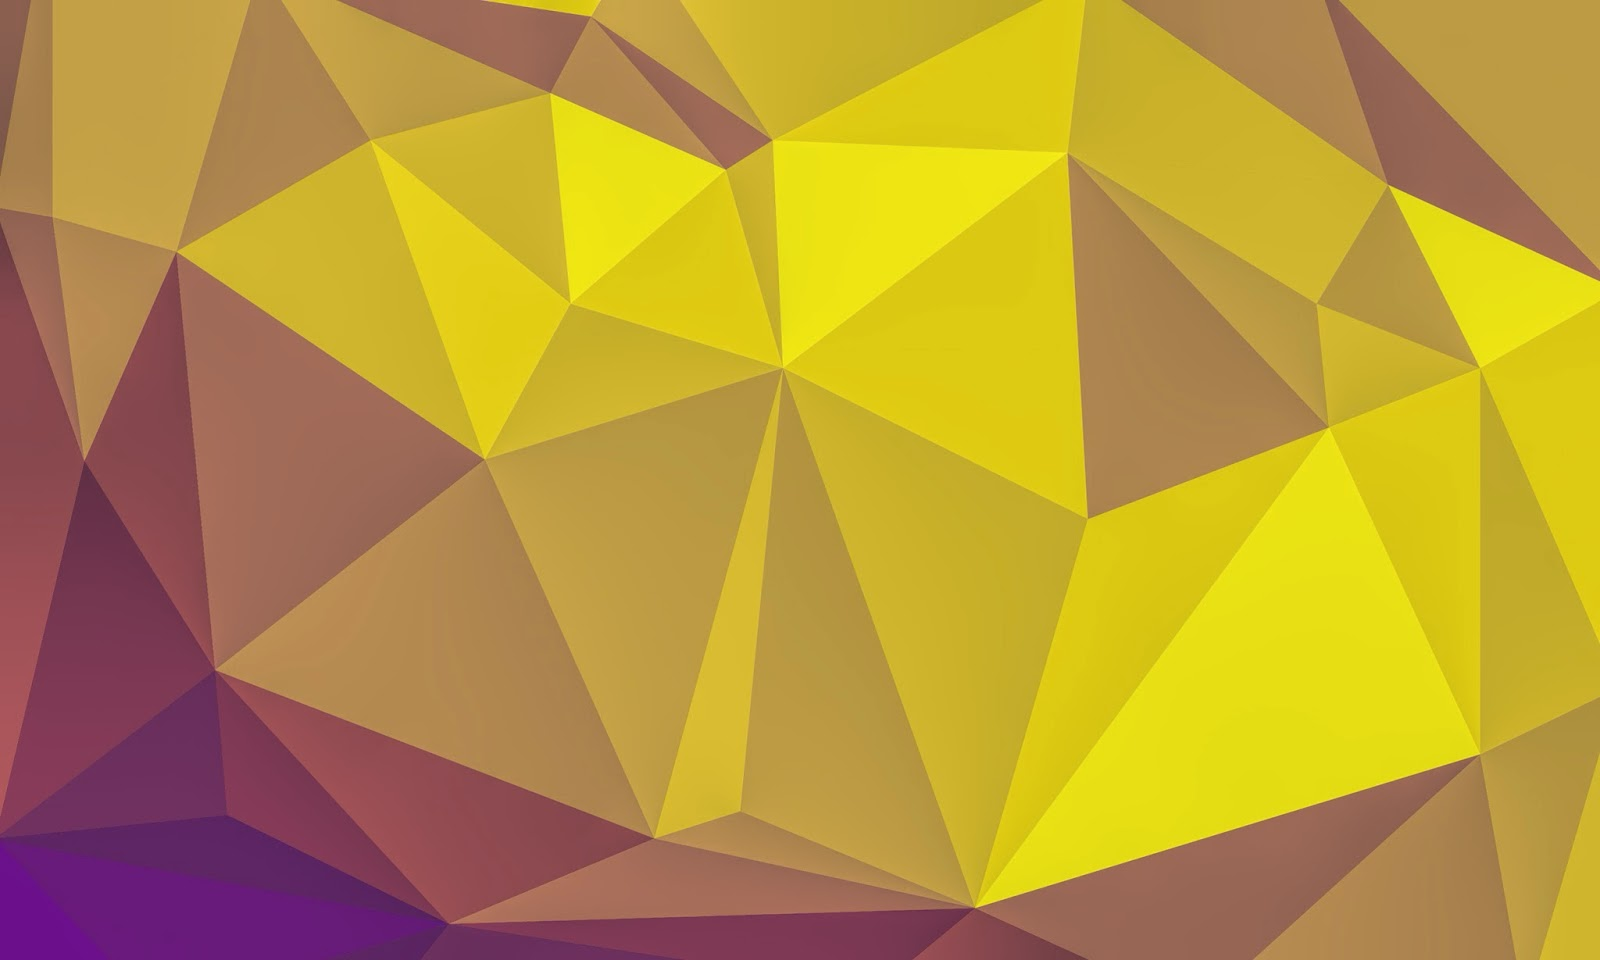 triangle abstract wallpapers hd - photo #43